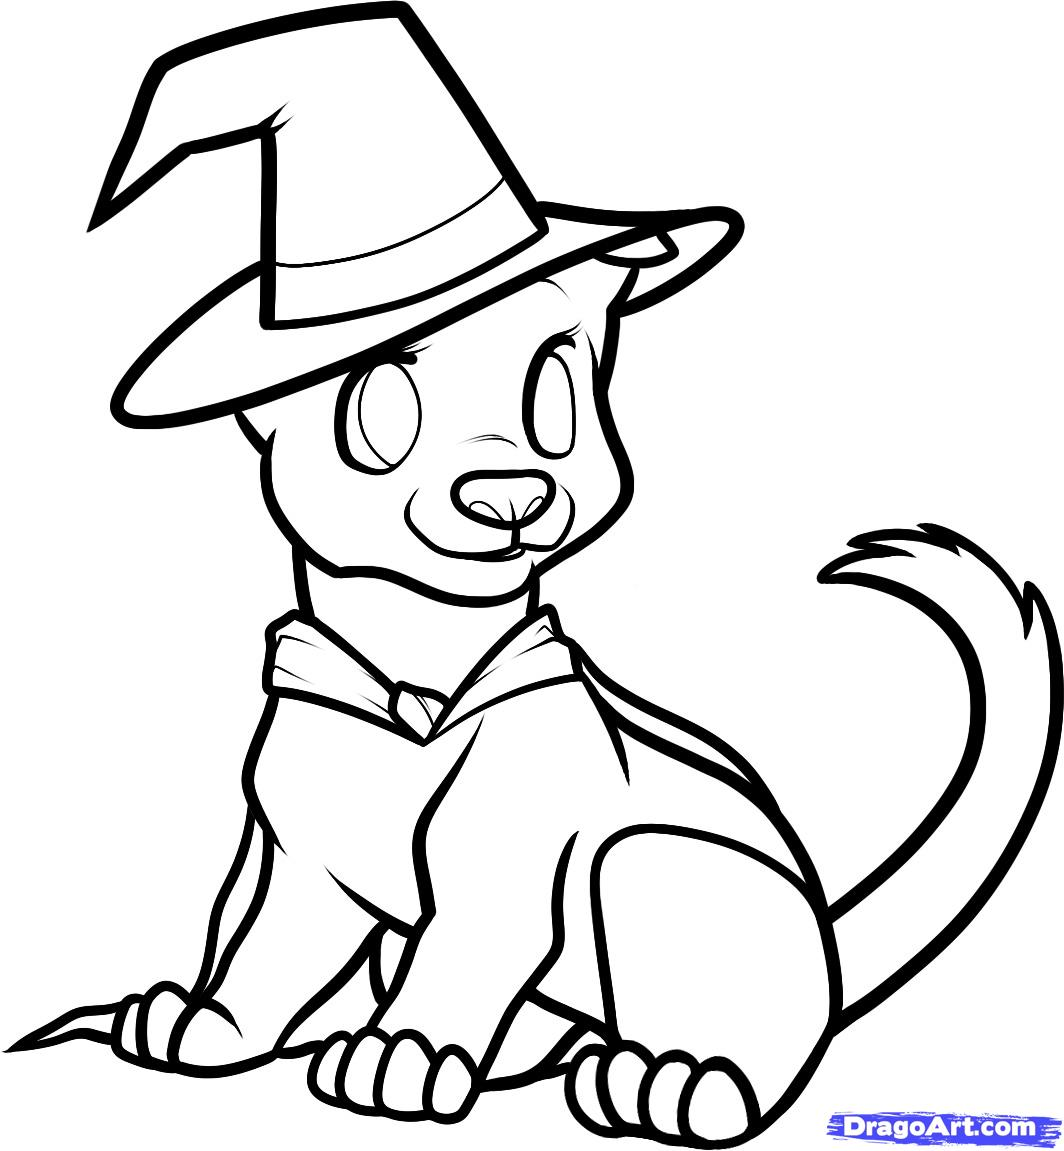 1064x1151 Halloween Drawings Step By Step Fun For Christmas